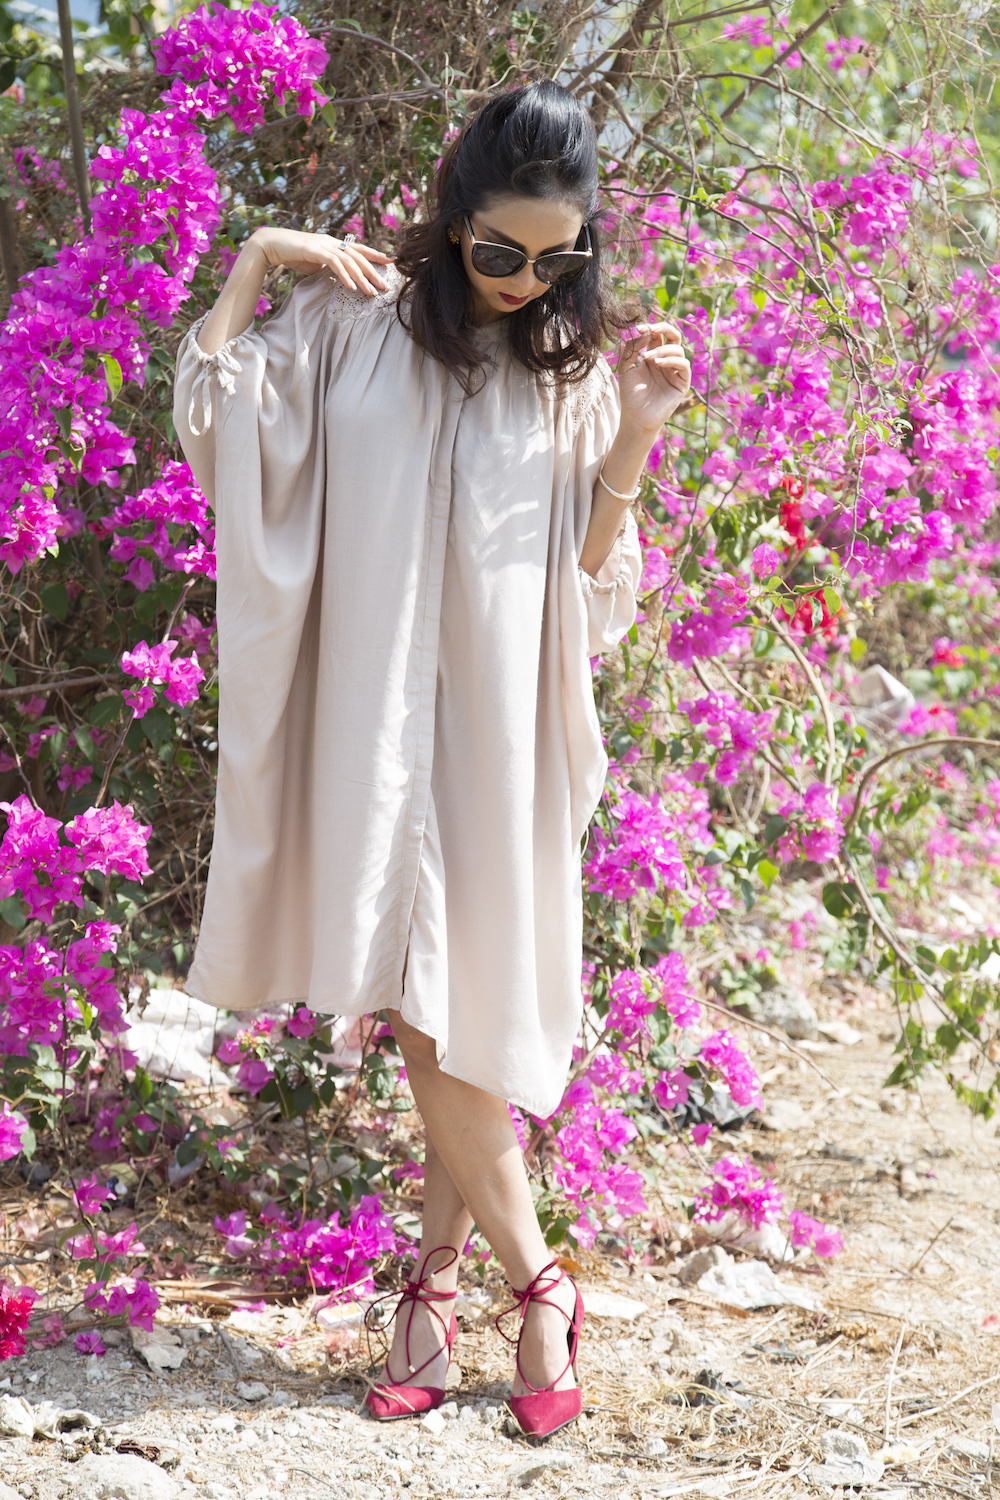 Myntra All You Need Deepika Padukone Collection Personal Style 1